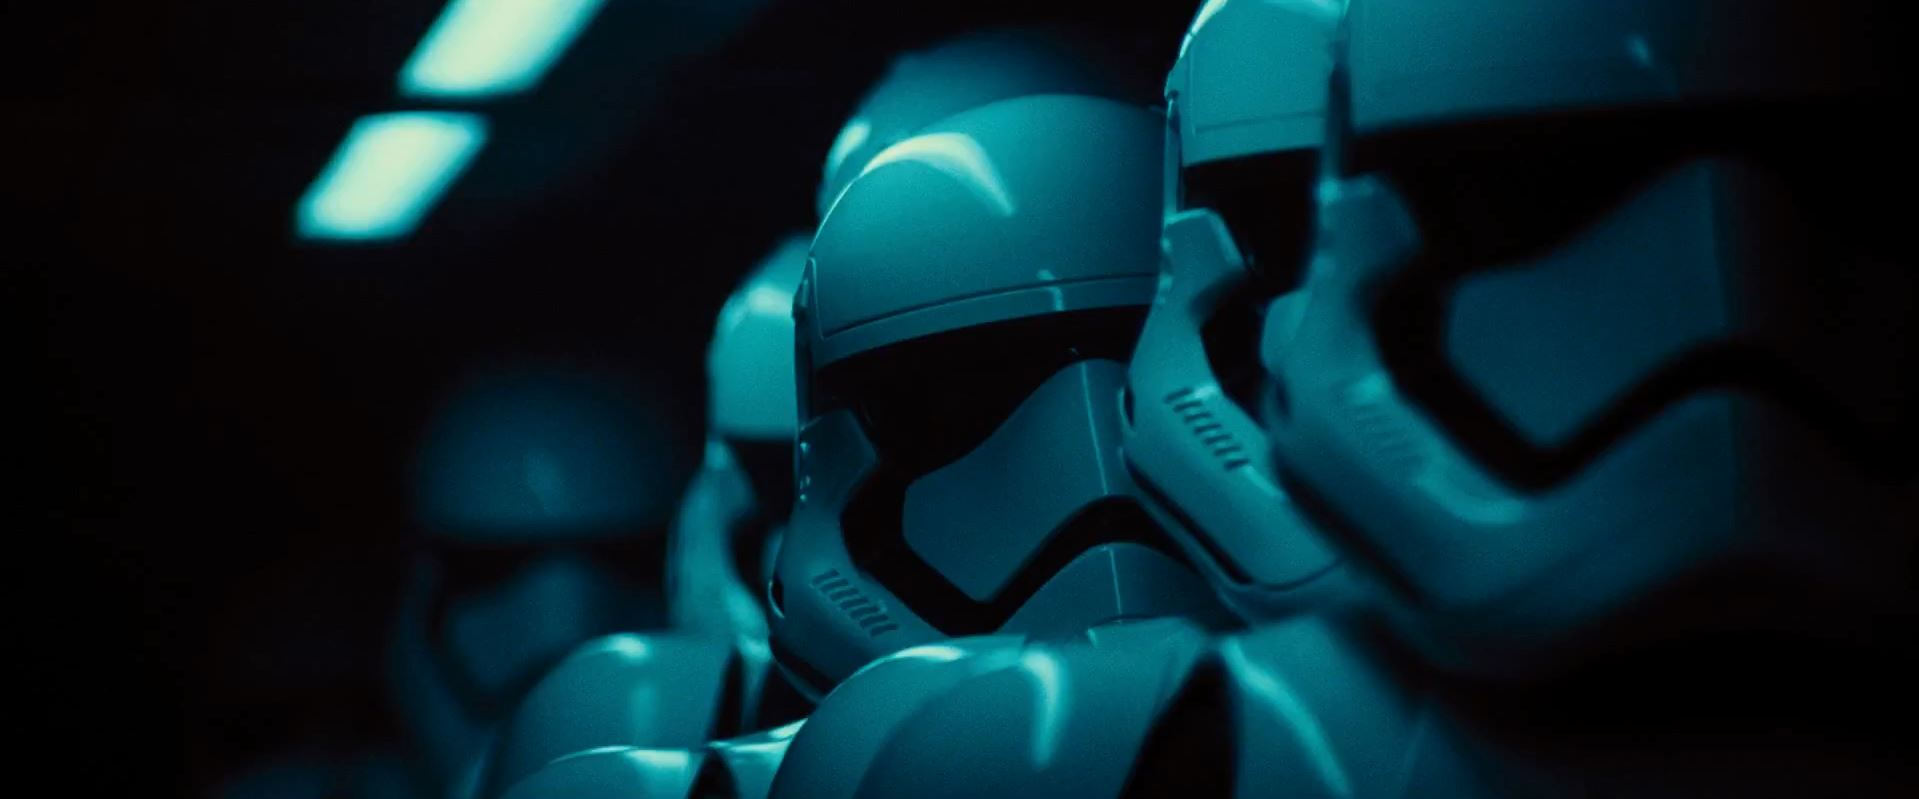 New storm troopers - Star Wars Episode 7 trailer released